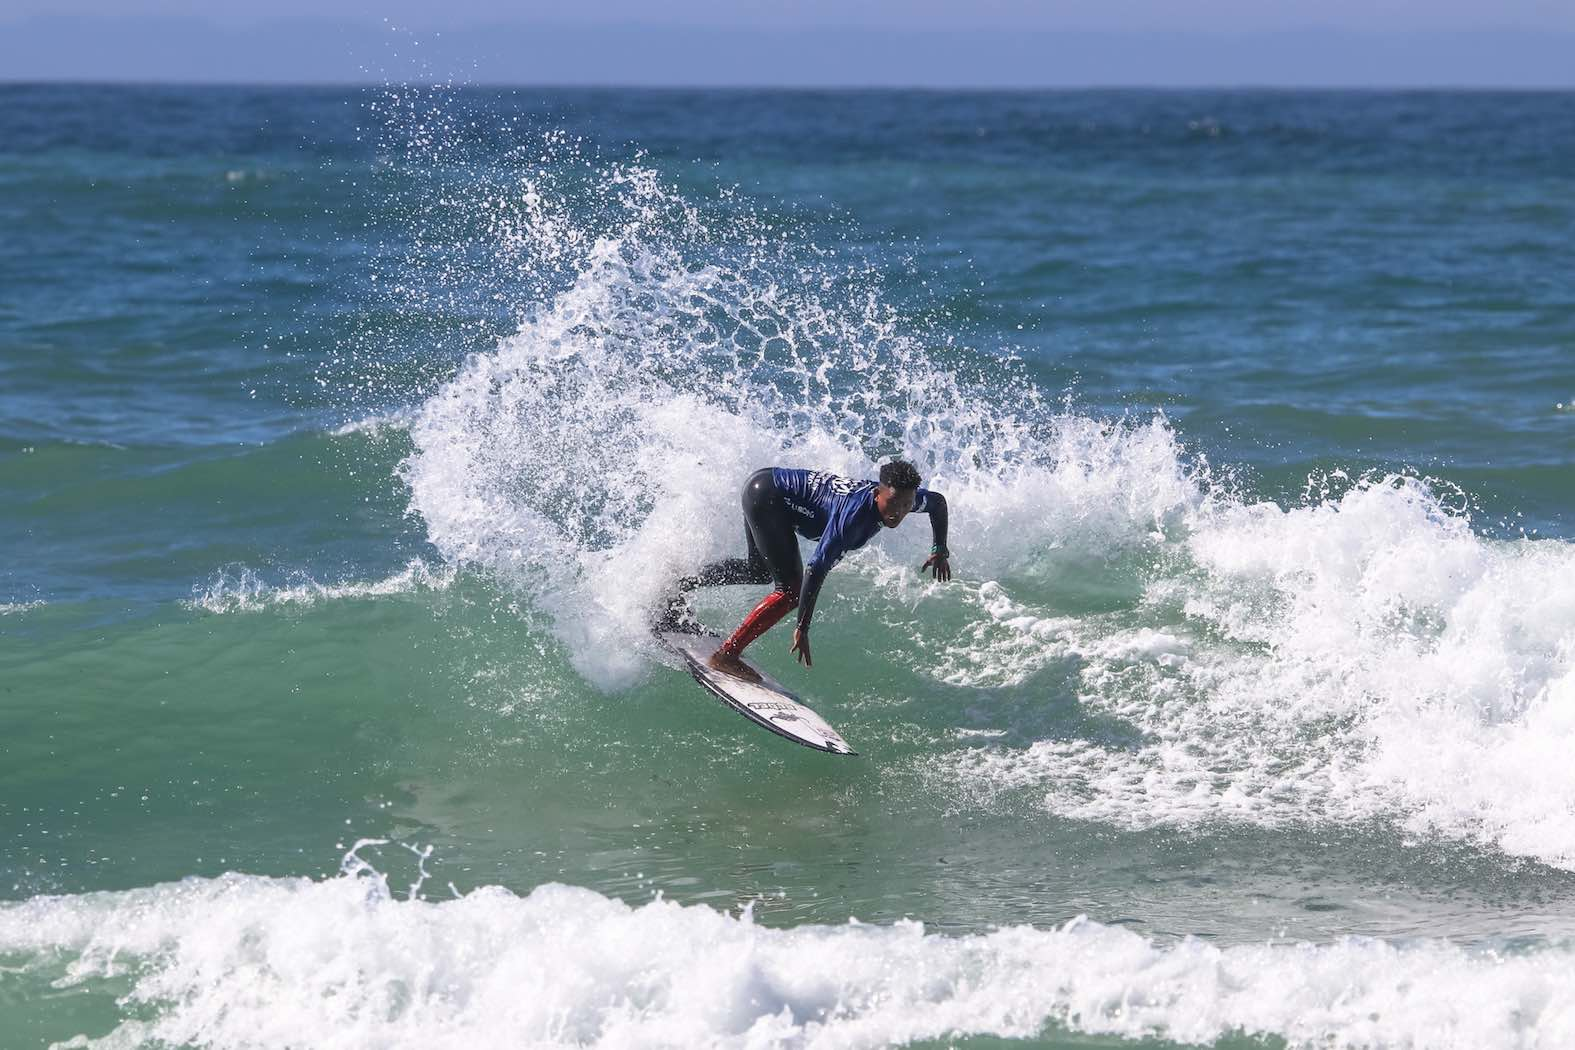 Dillon Hendricks surfing his way to winning the Volkswagen Nelson Mandela Bay Surf Pro